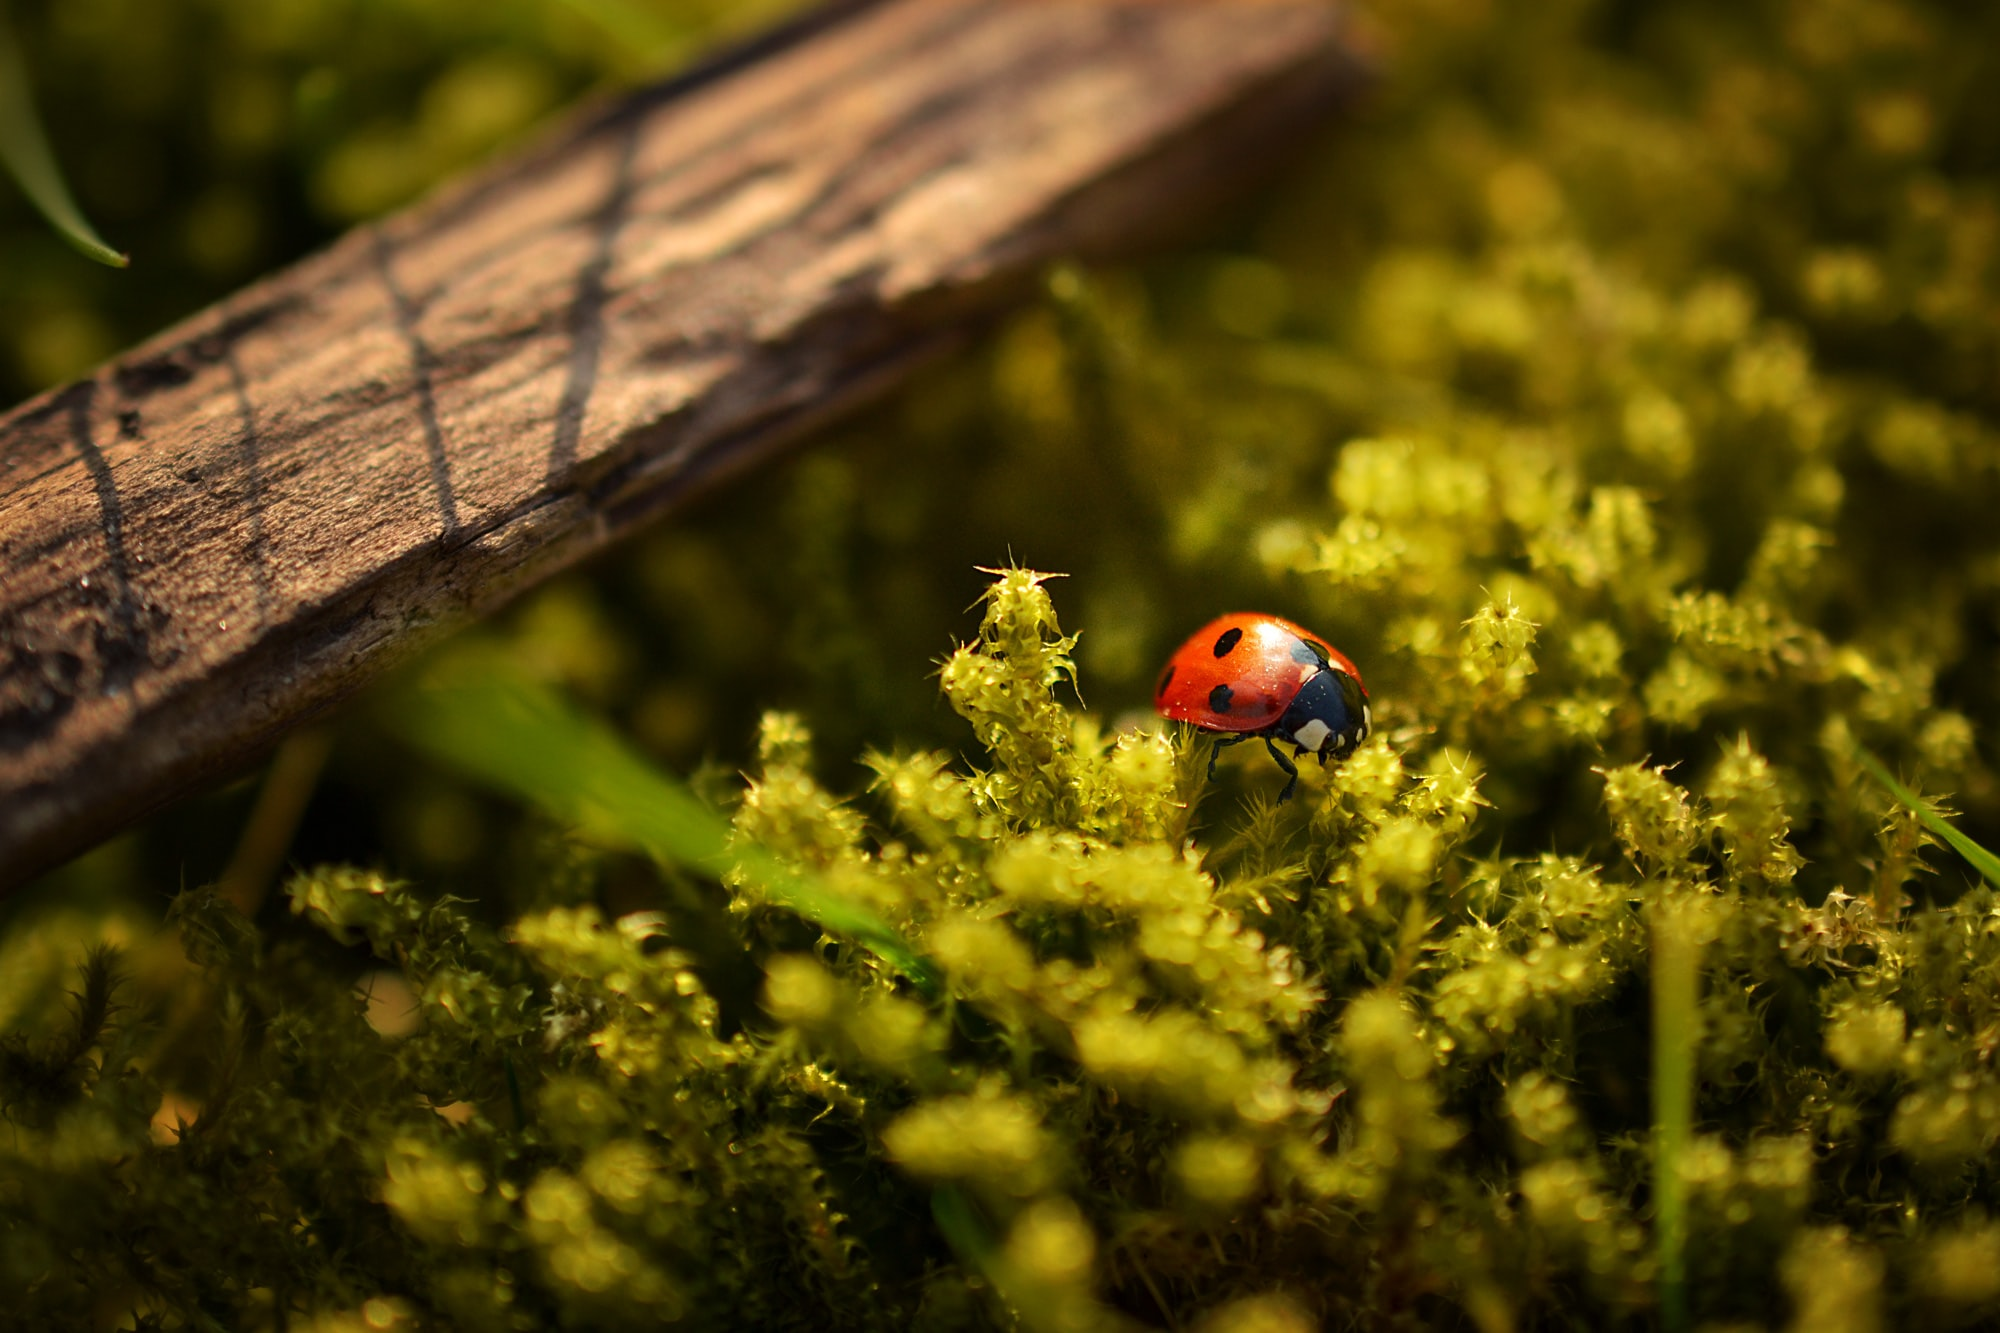 A red ladybird walking on yellow and green plants